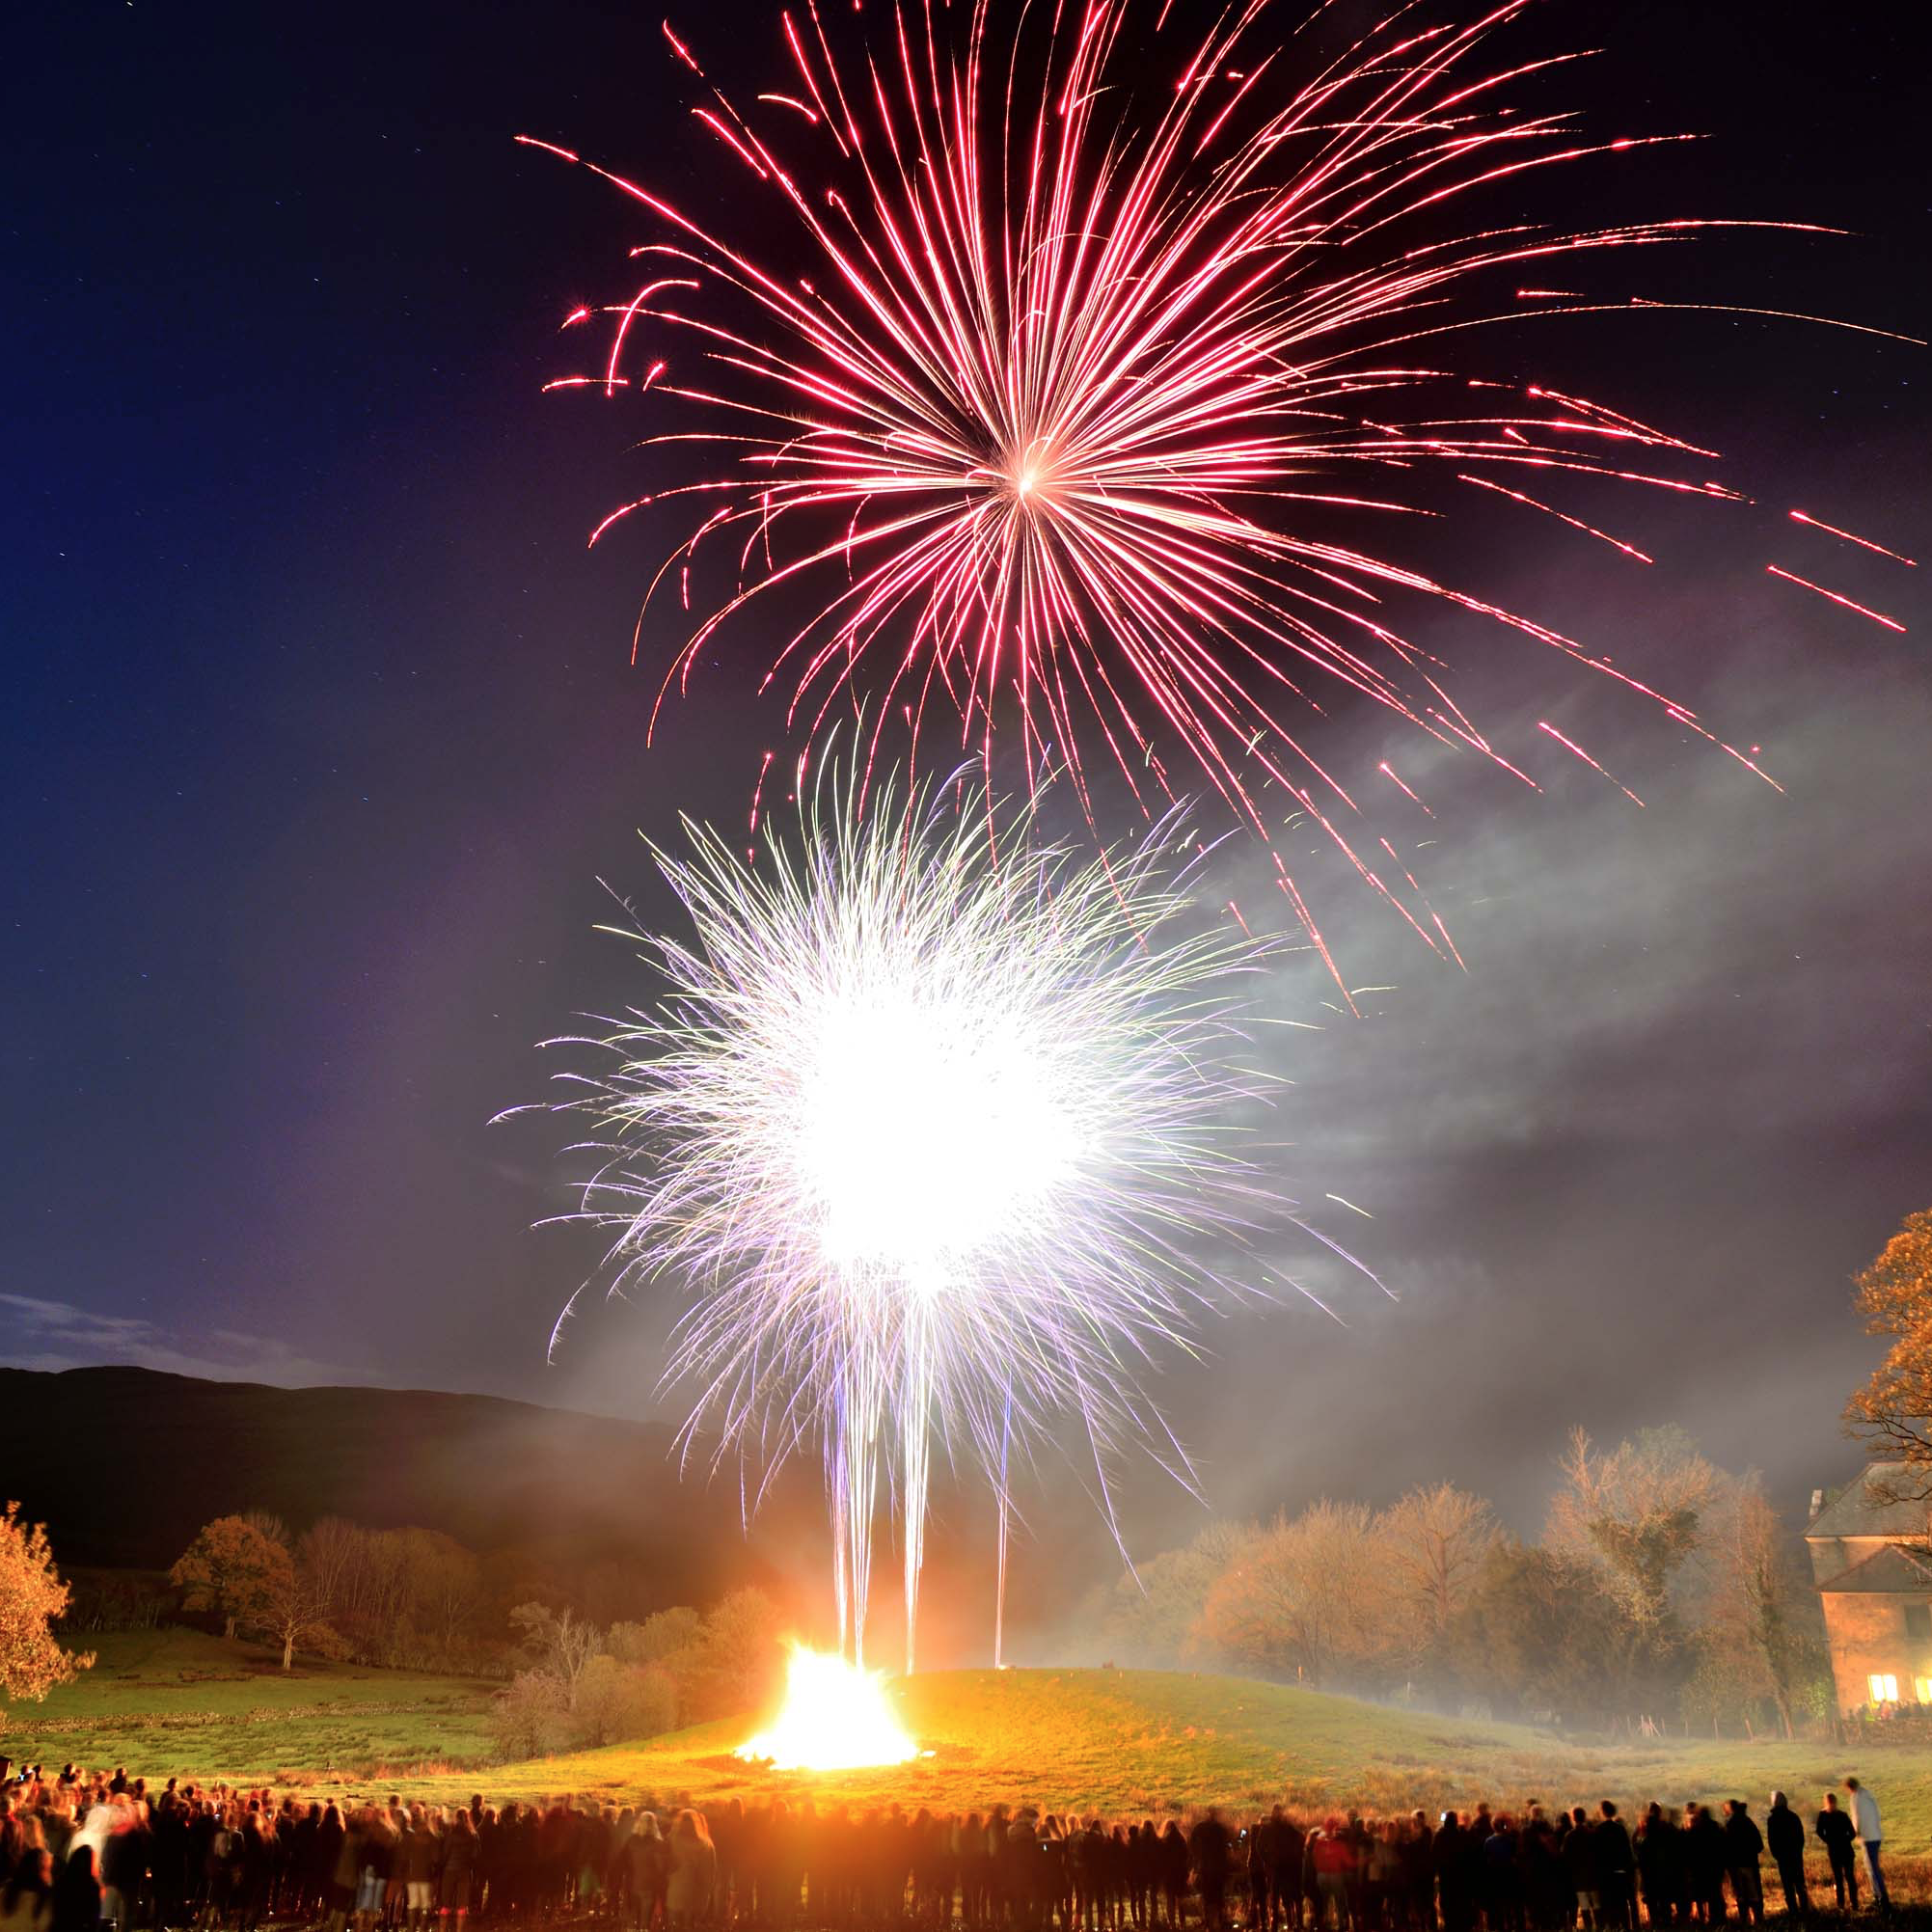 silent firework displays by illuminated fireworks